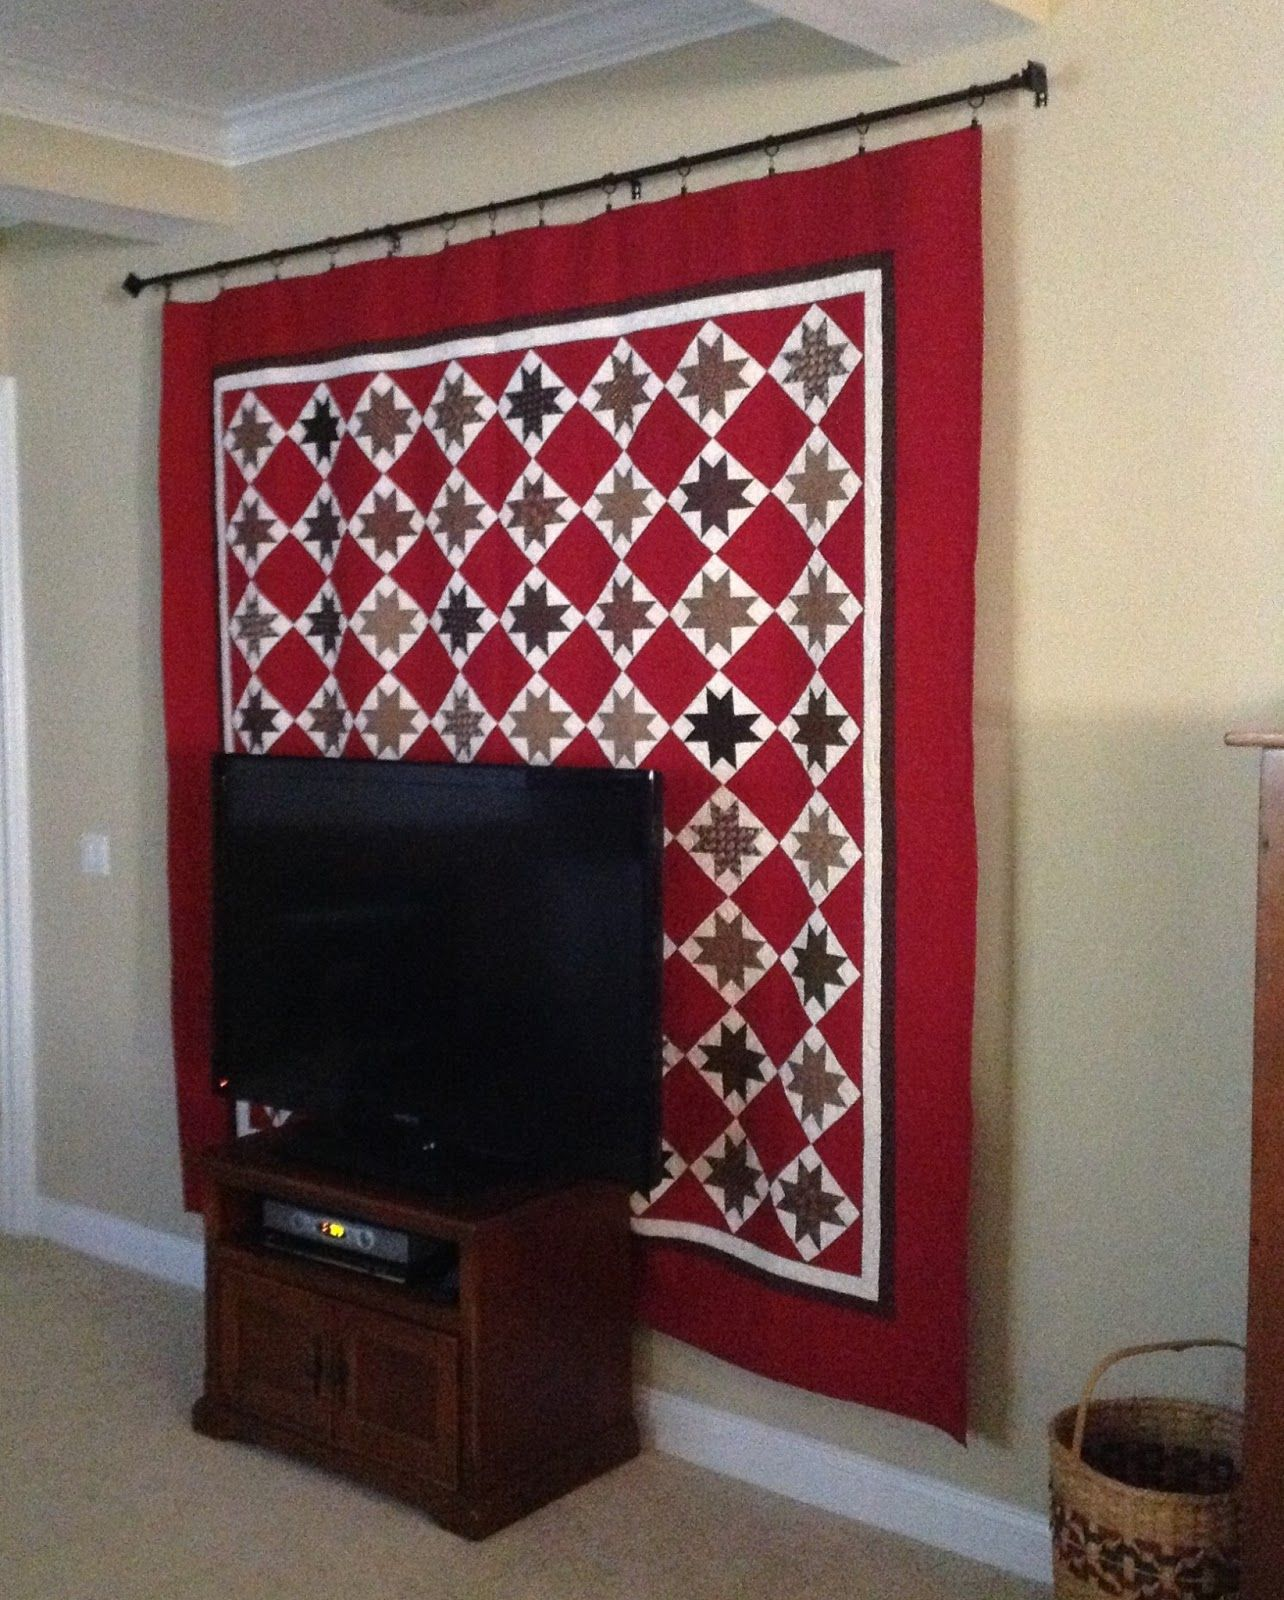 Best 25 hanging quilts ideas on pinterest quilt hangers for Hanging pictures on walls ideas